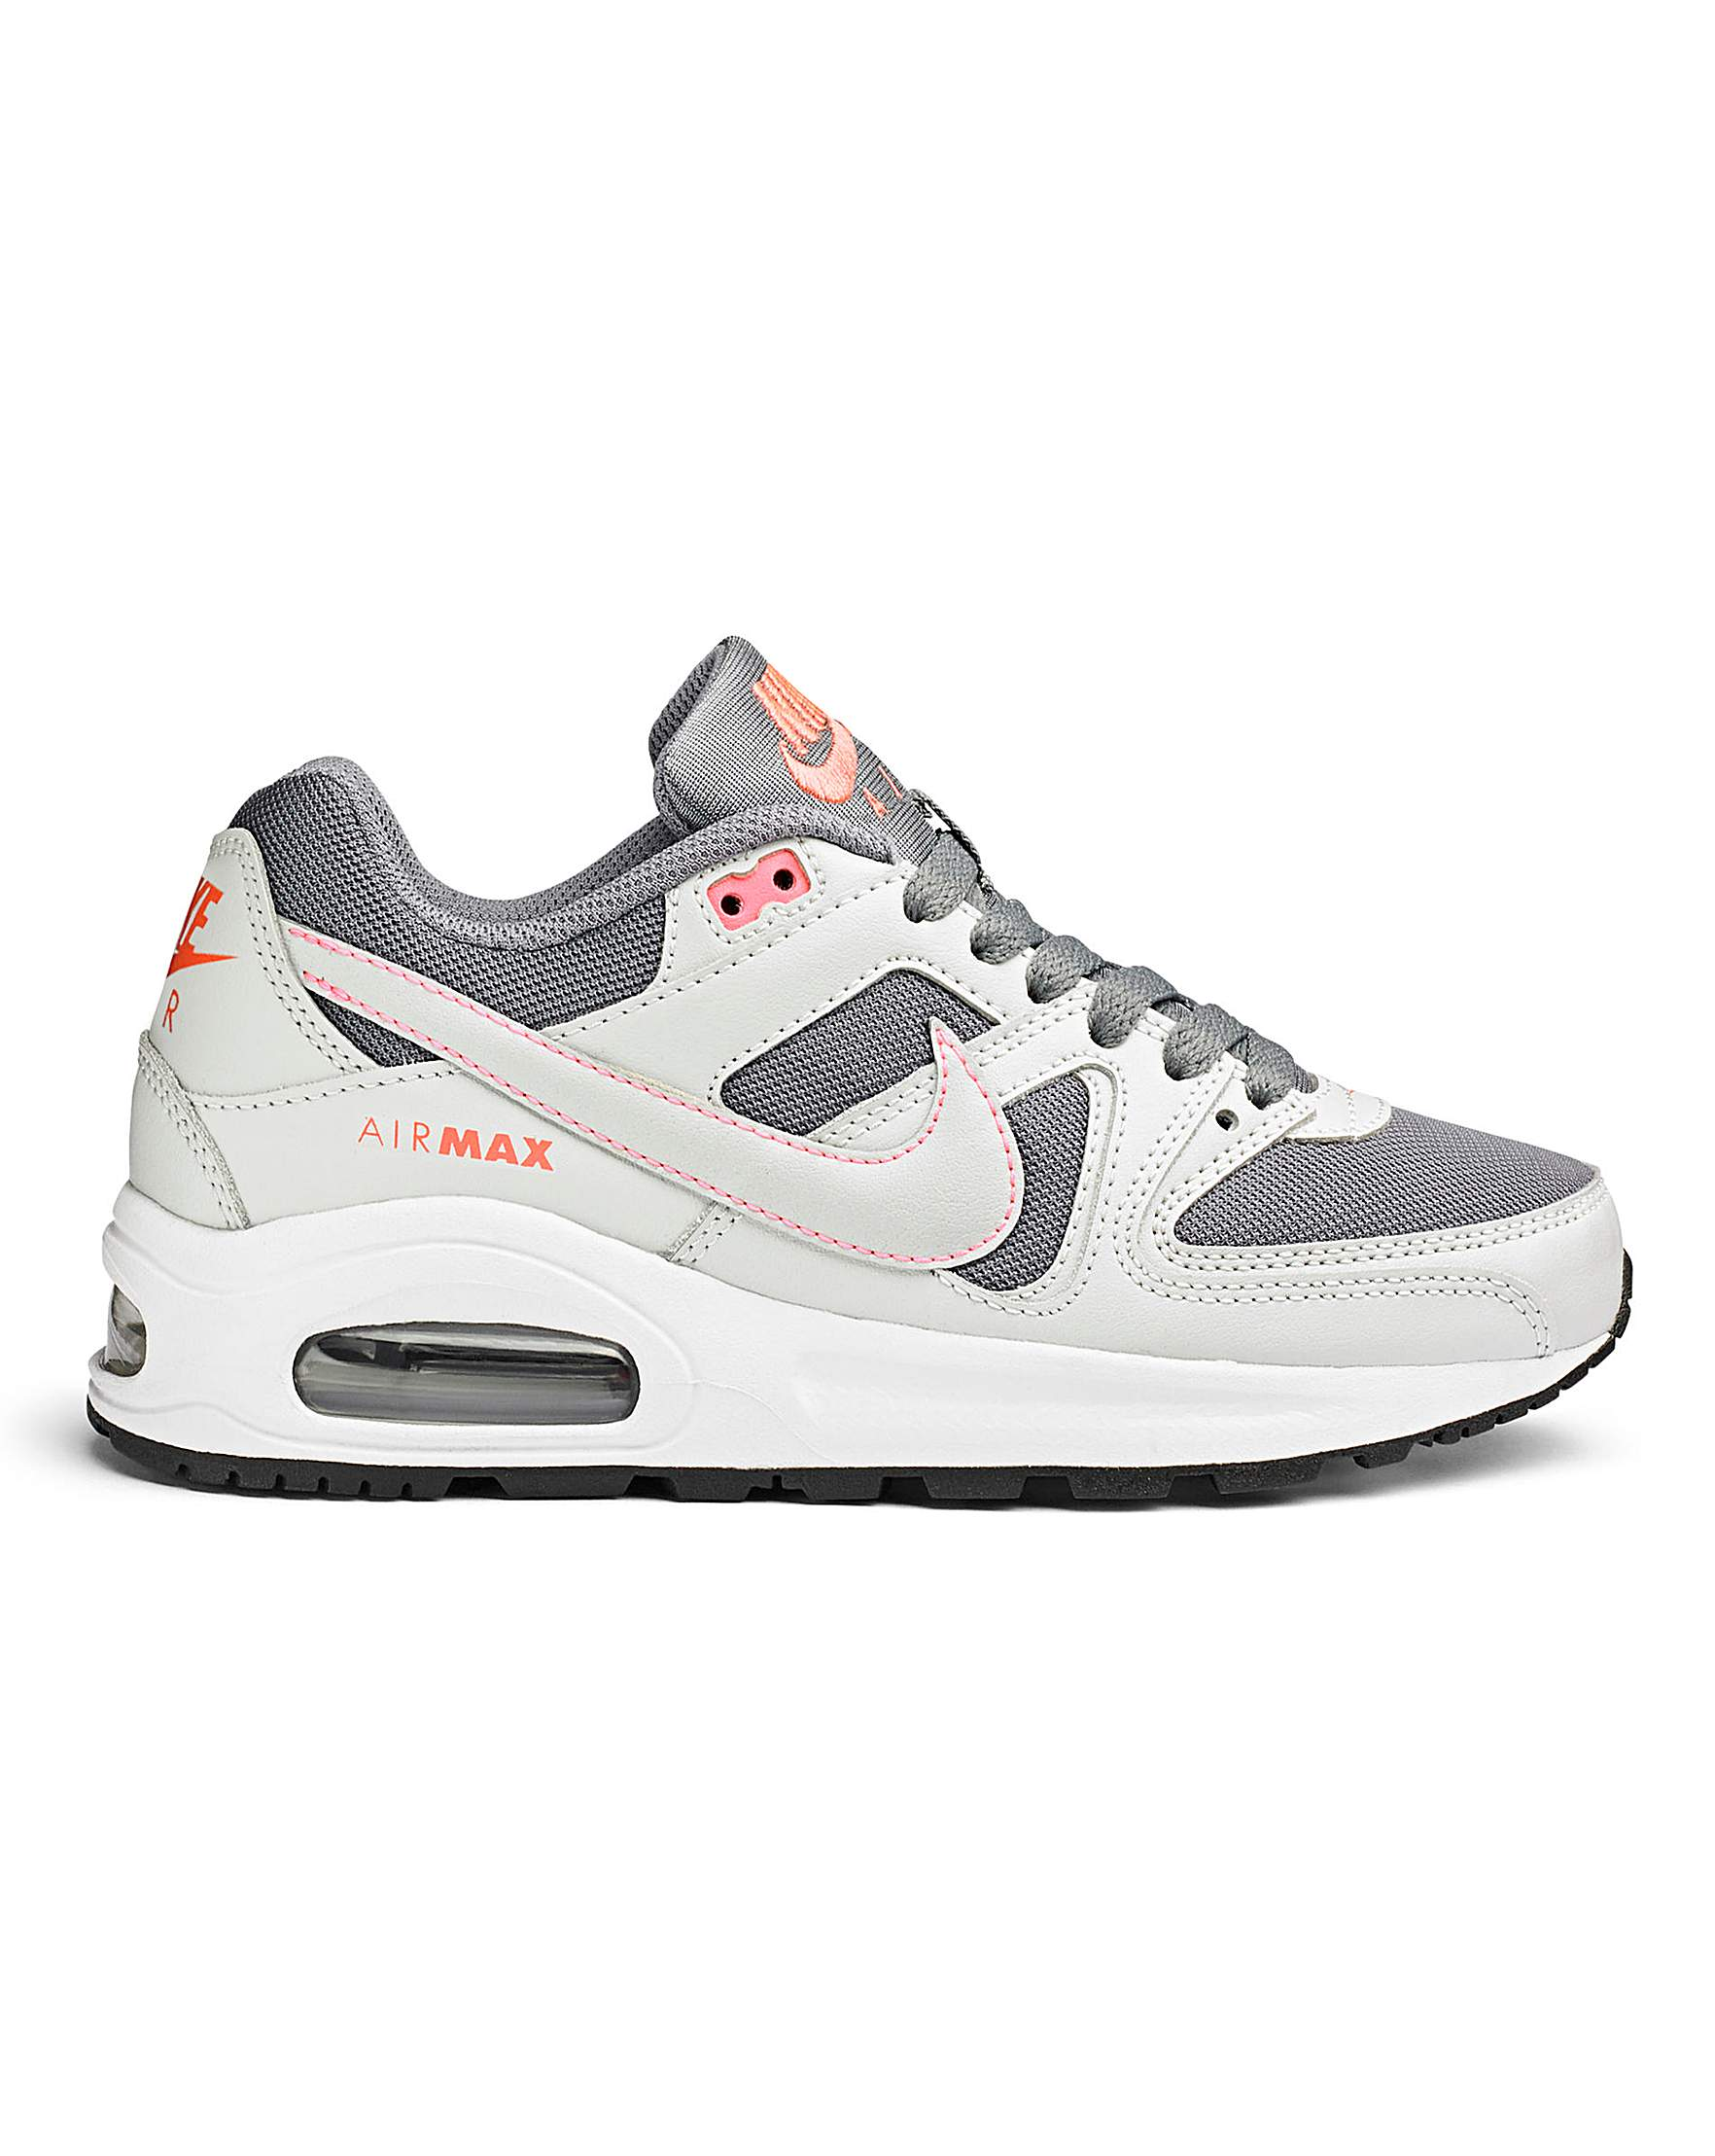 a09433a236 Nike Air Max Command Flex GS Trainers | Premier Man